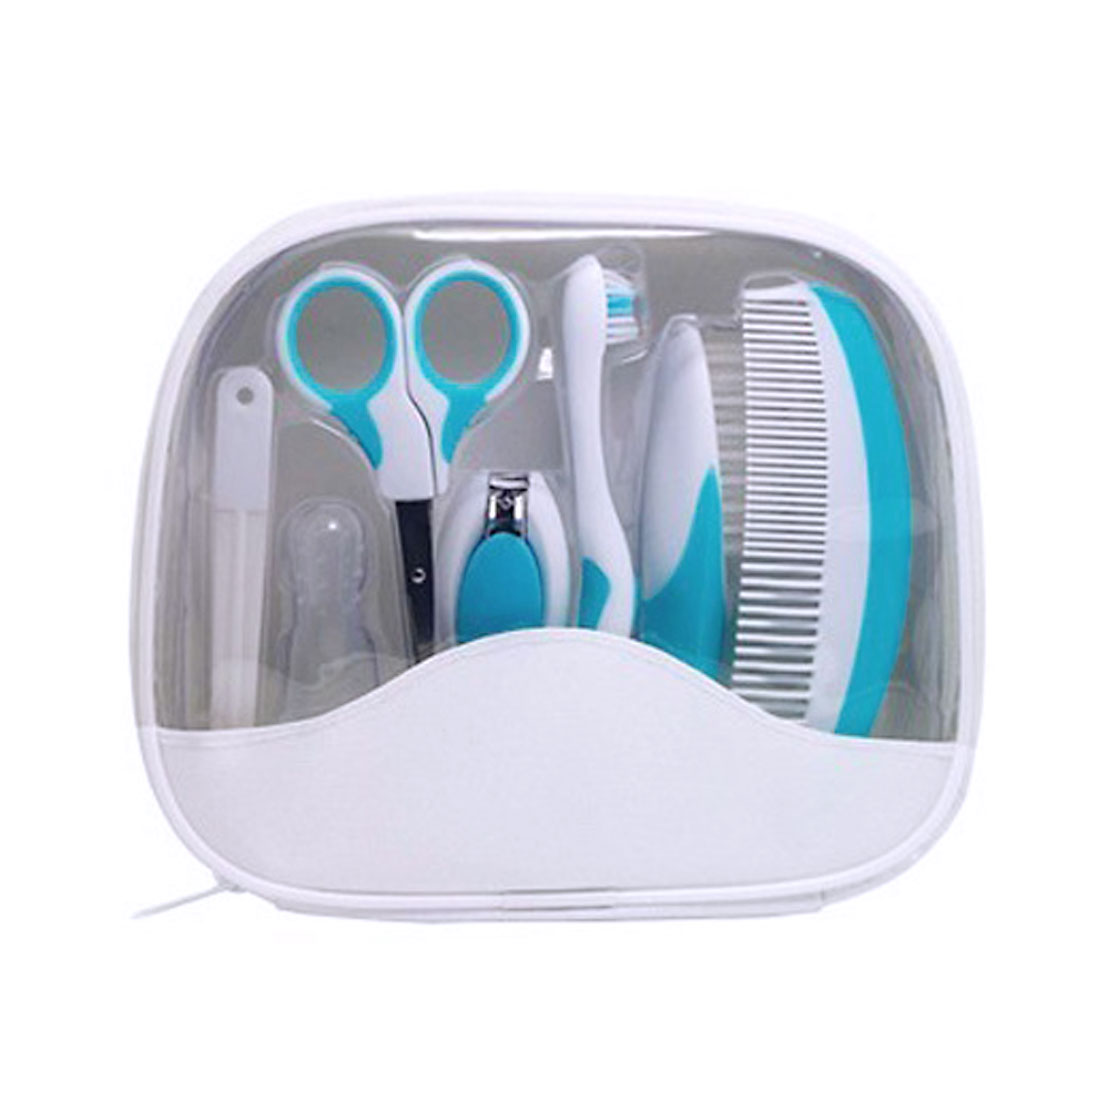 Newborn Infant Baby Toothbrush Nail Clipper Hair Comb Brush Care Grooming Set